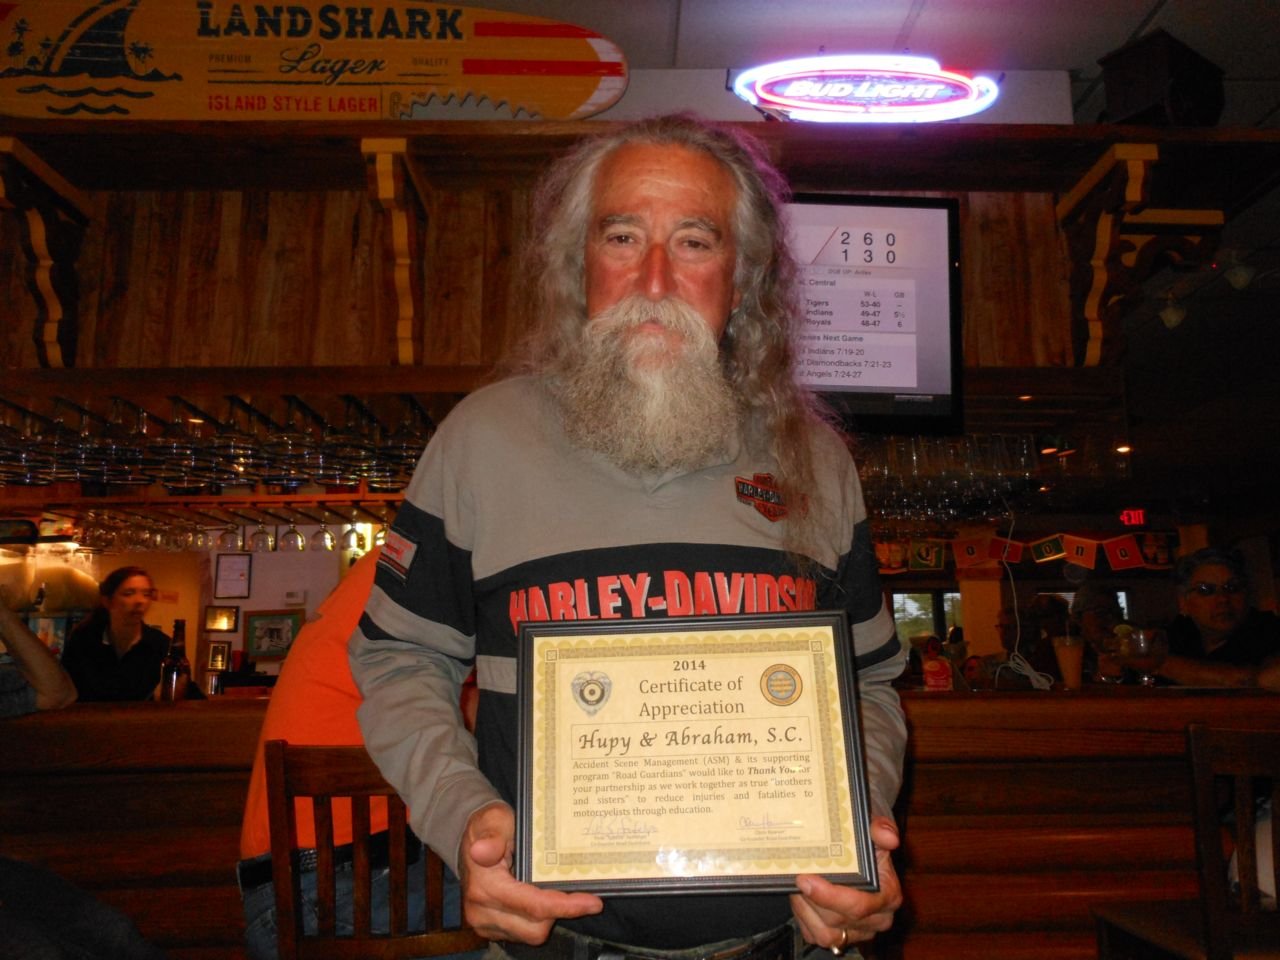 Tony Pan with Certificate of Appreciation for Hupy and Abraham